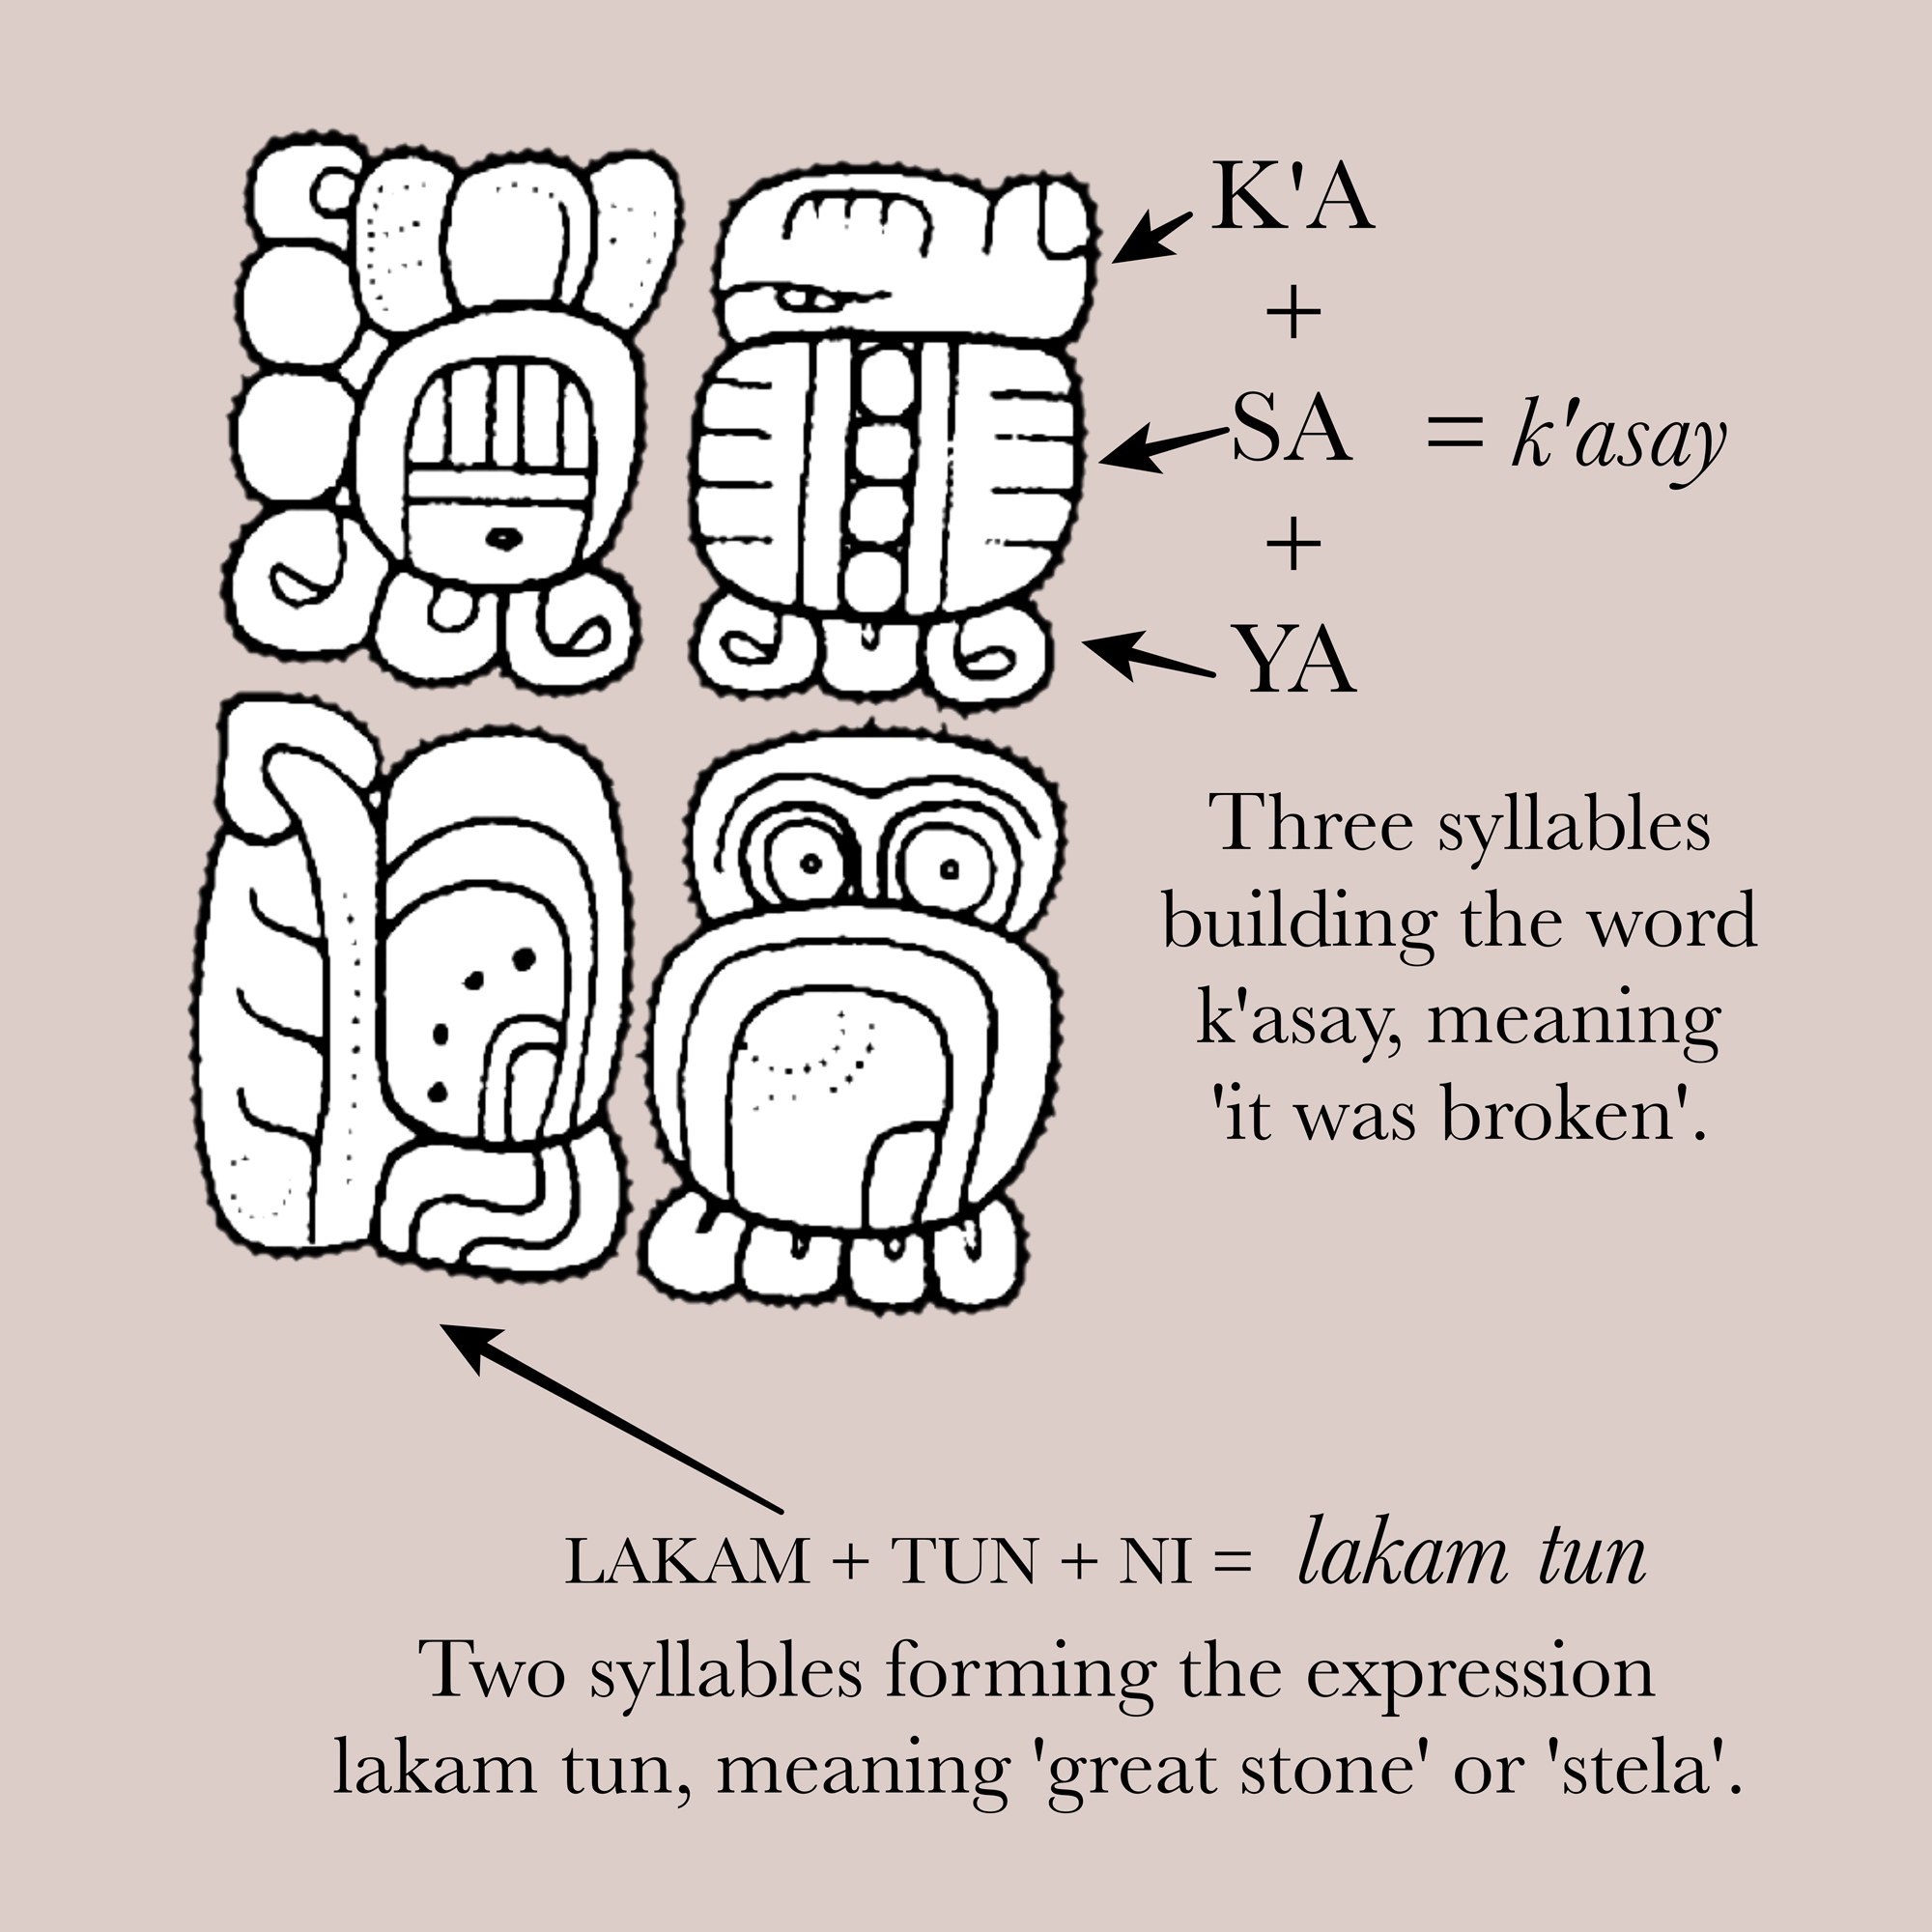 The Maya used symbols (glyphs) to build words and sentences. Some symbols represent complete words, while others represent syllables strung together to make a word.